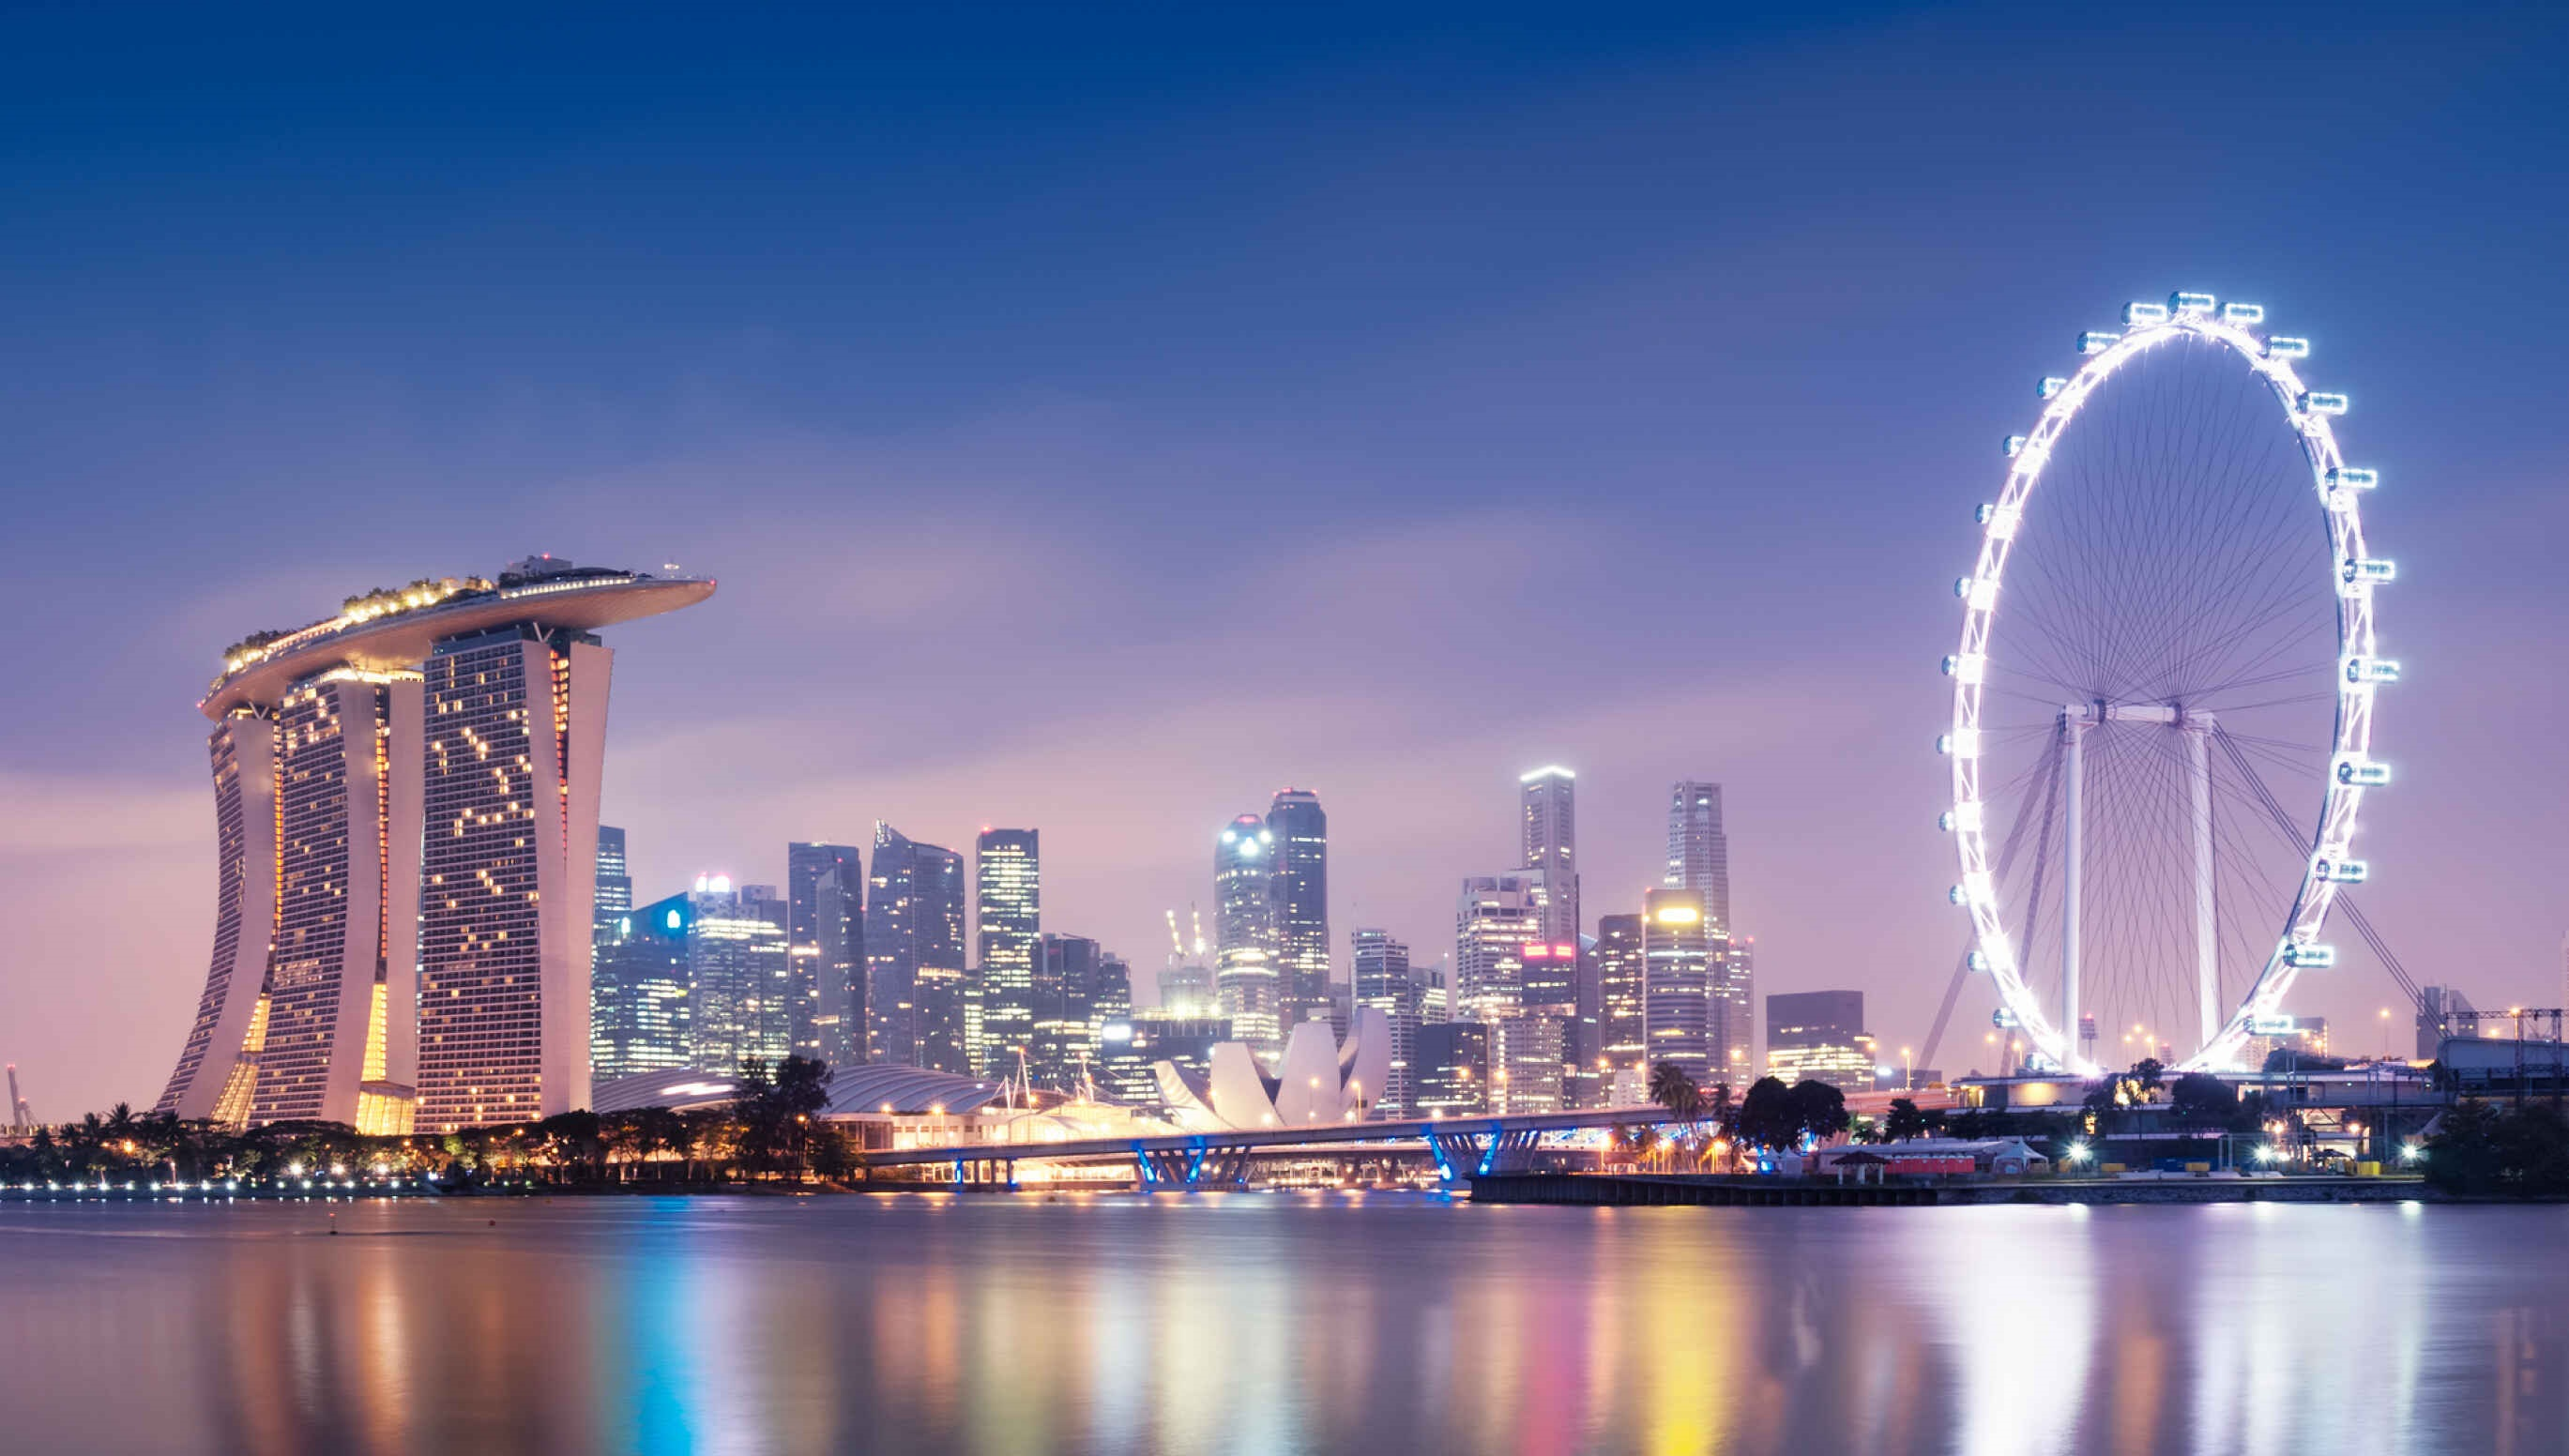 HTop 5 events in Singapore to look forward to in 2020